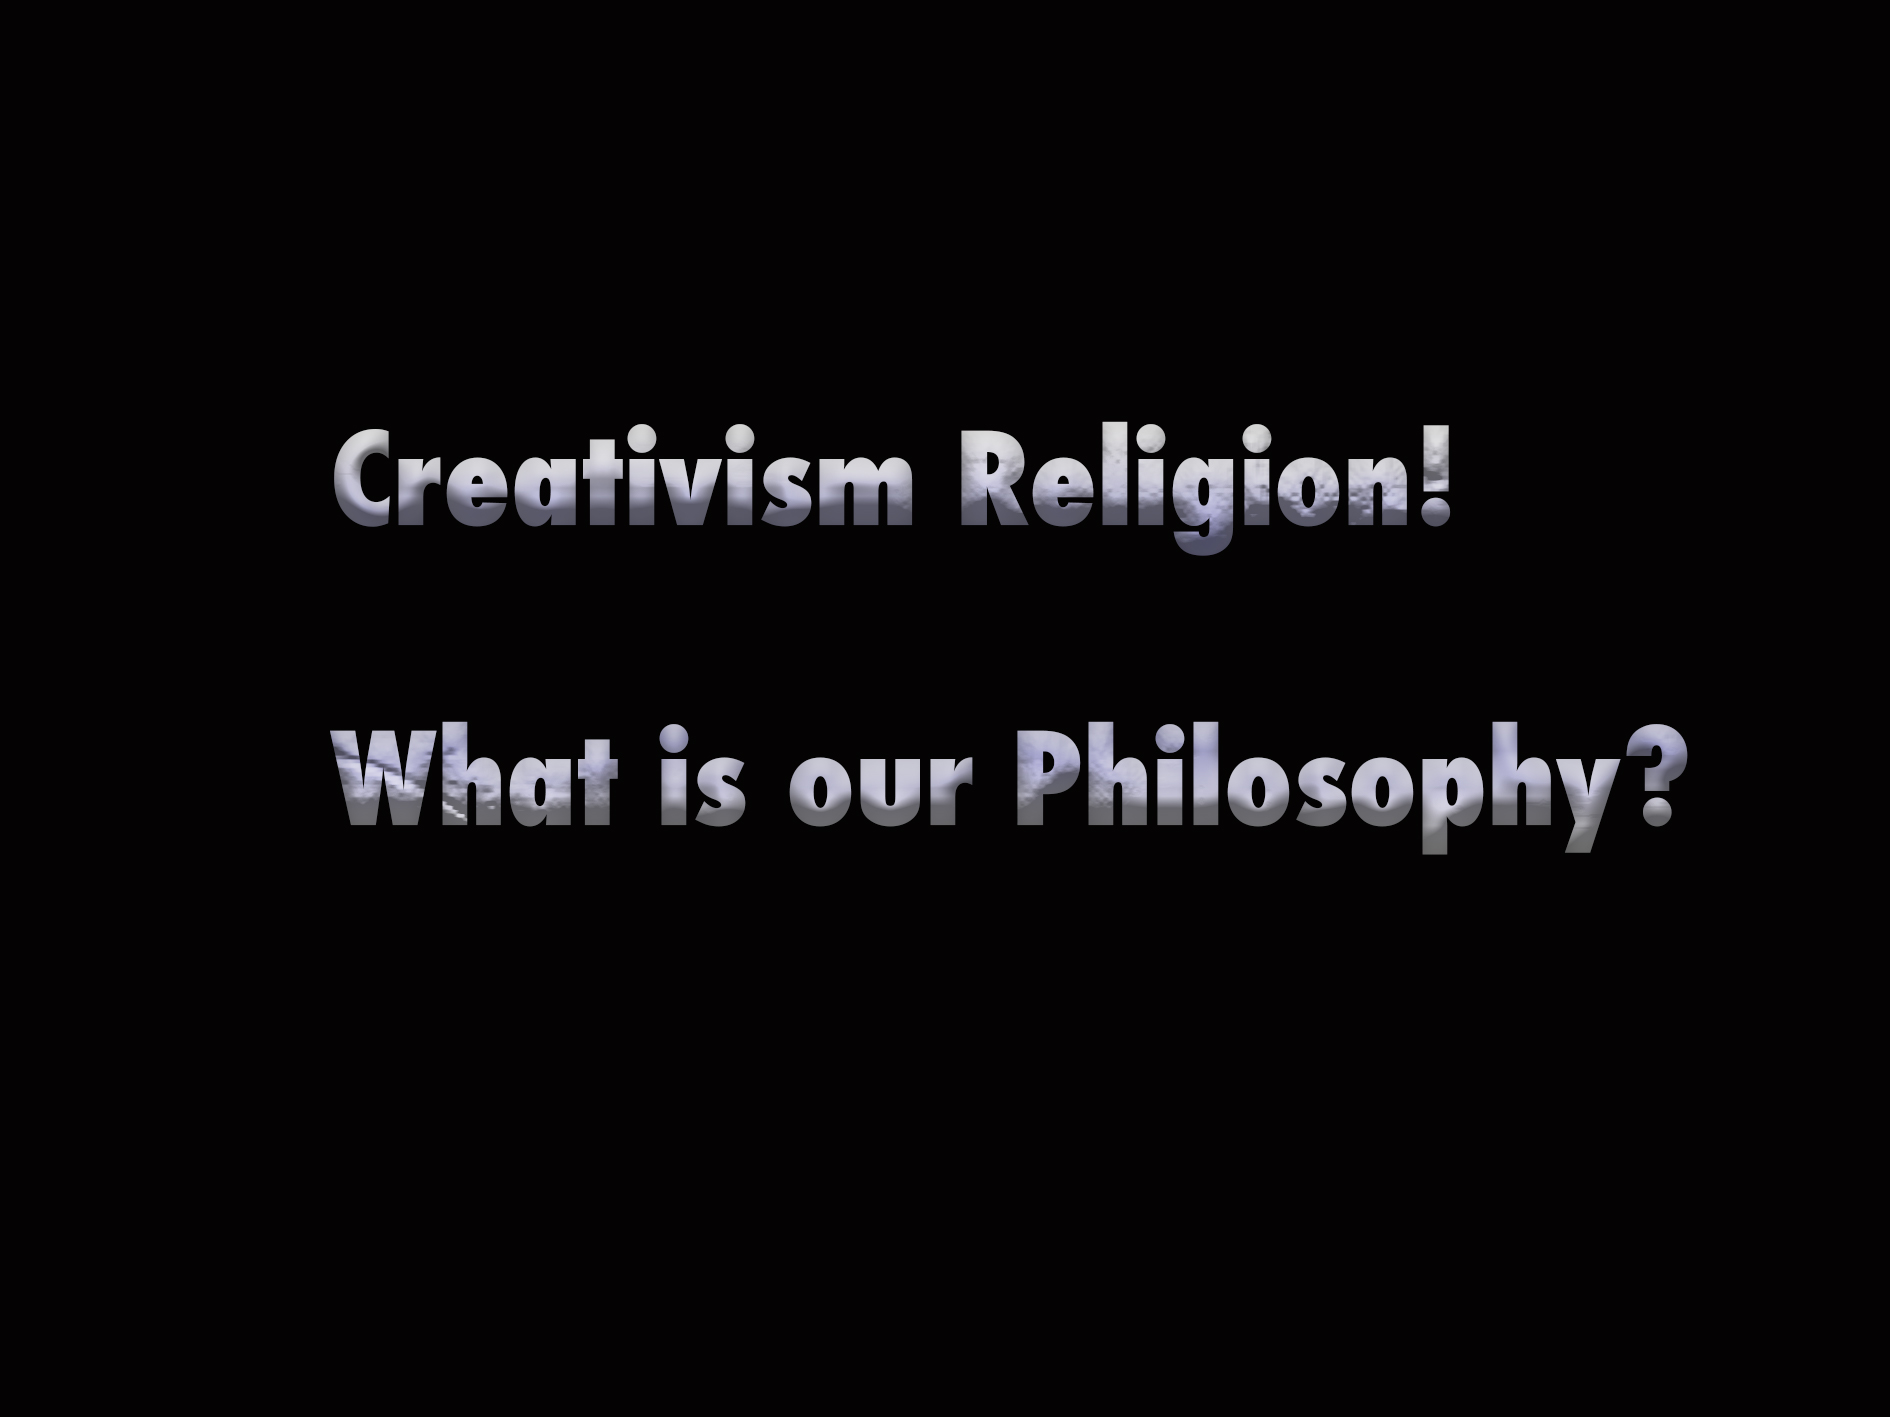 Creativism Religion – What is our Philosophy?